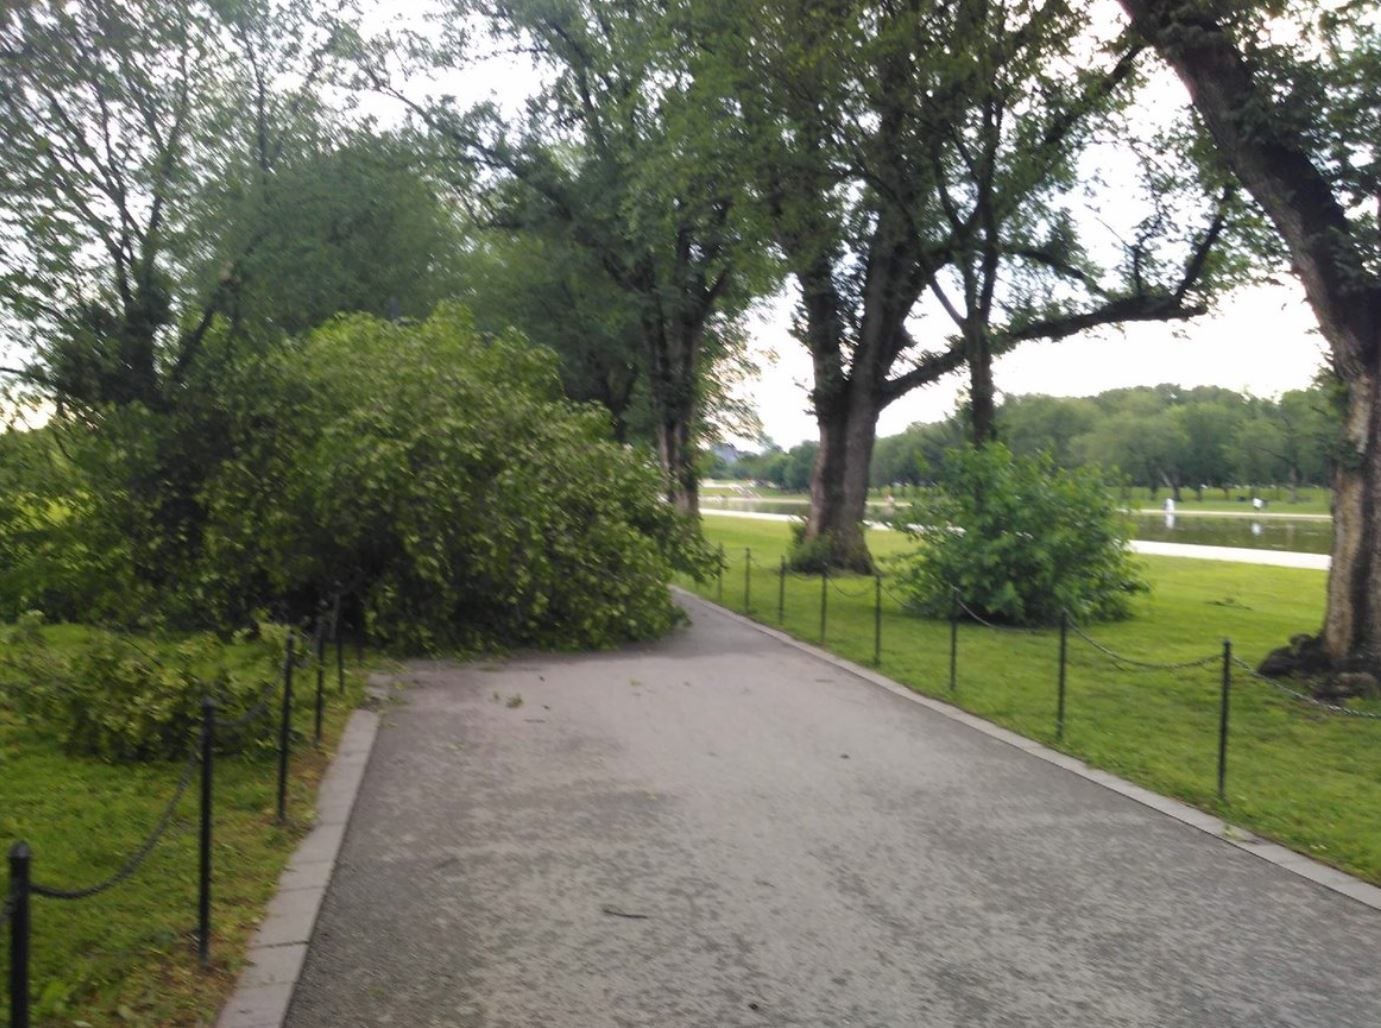 A tree falls near the Lincoln Memorial Reflecting Pool after a storm passed through the D.C. area on Thursday, May 23, 2019. (Courtesy National Park Service)